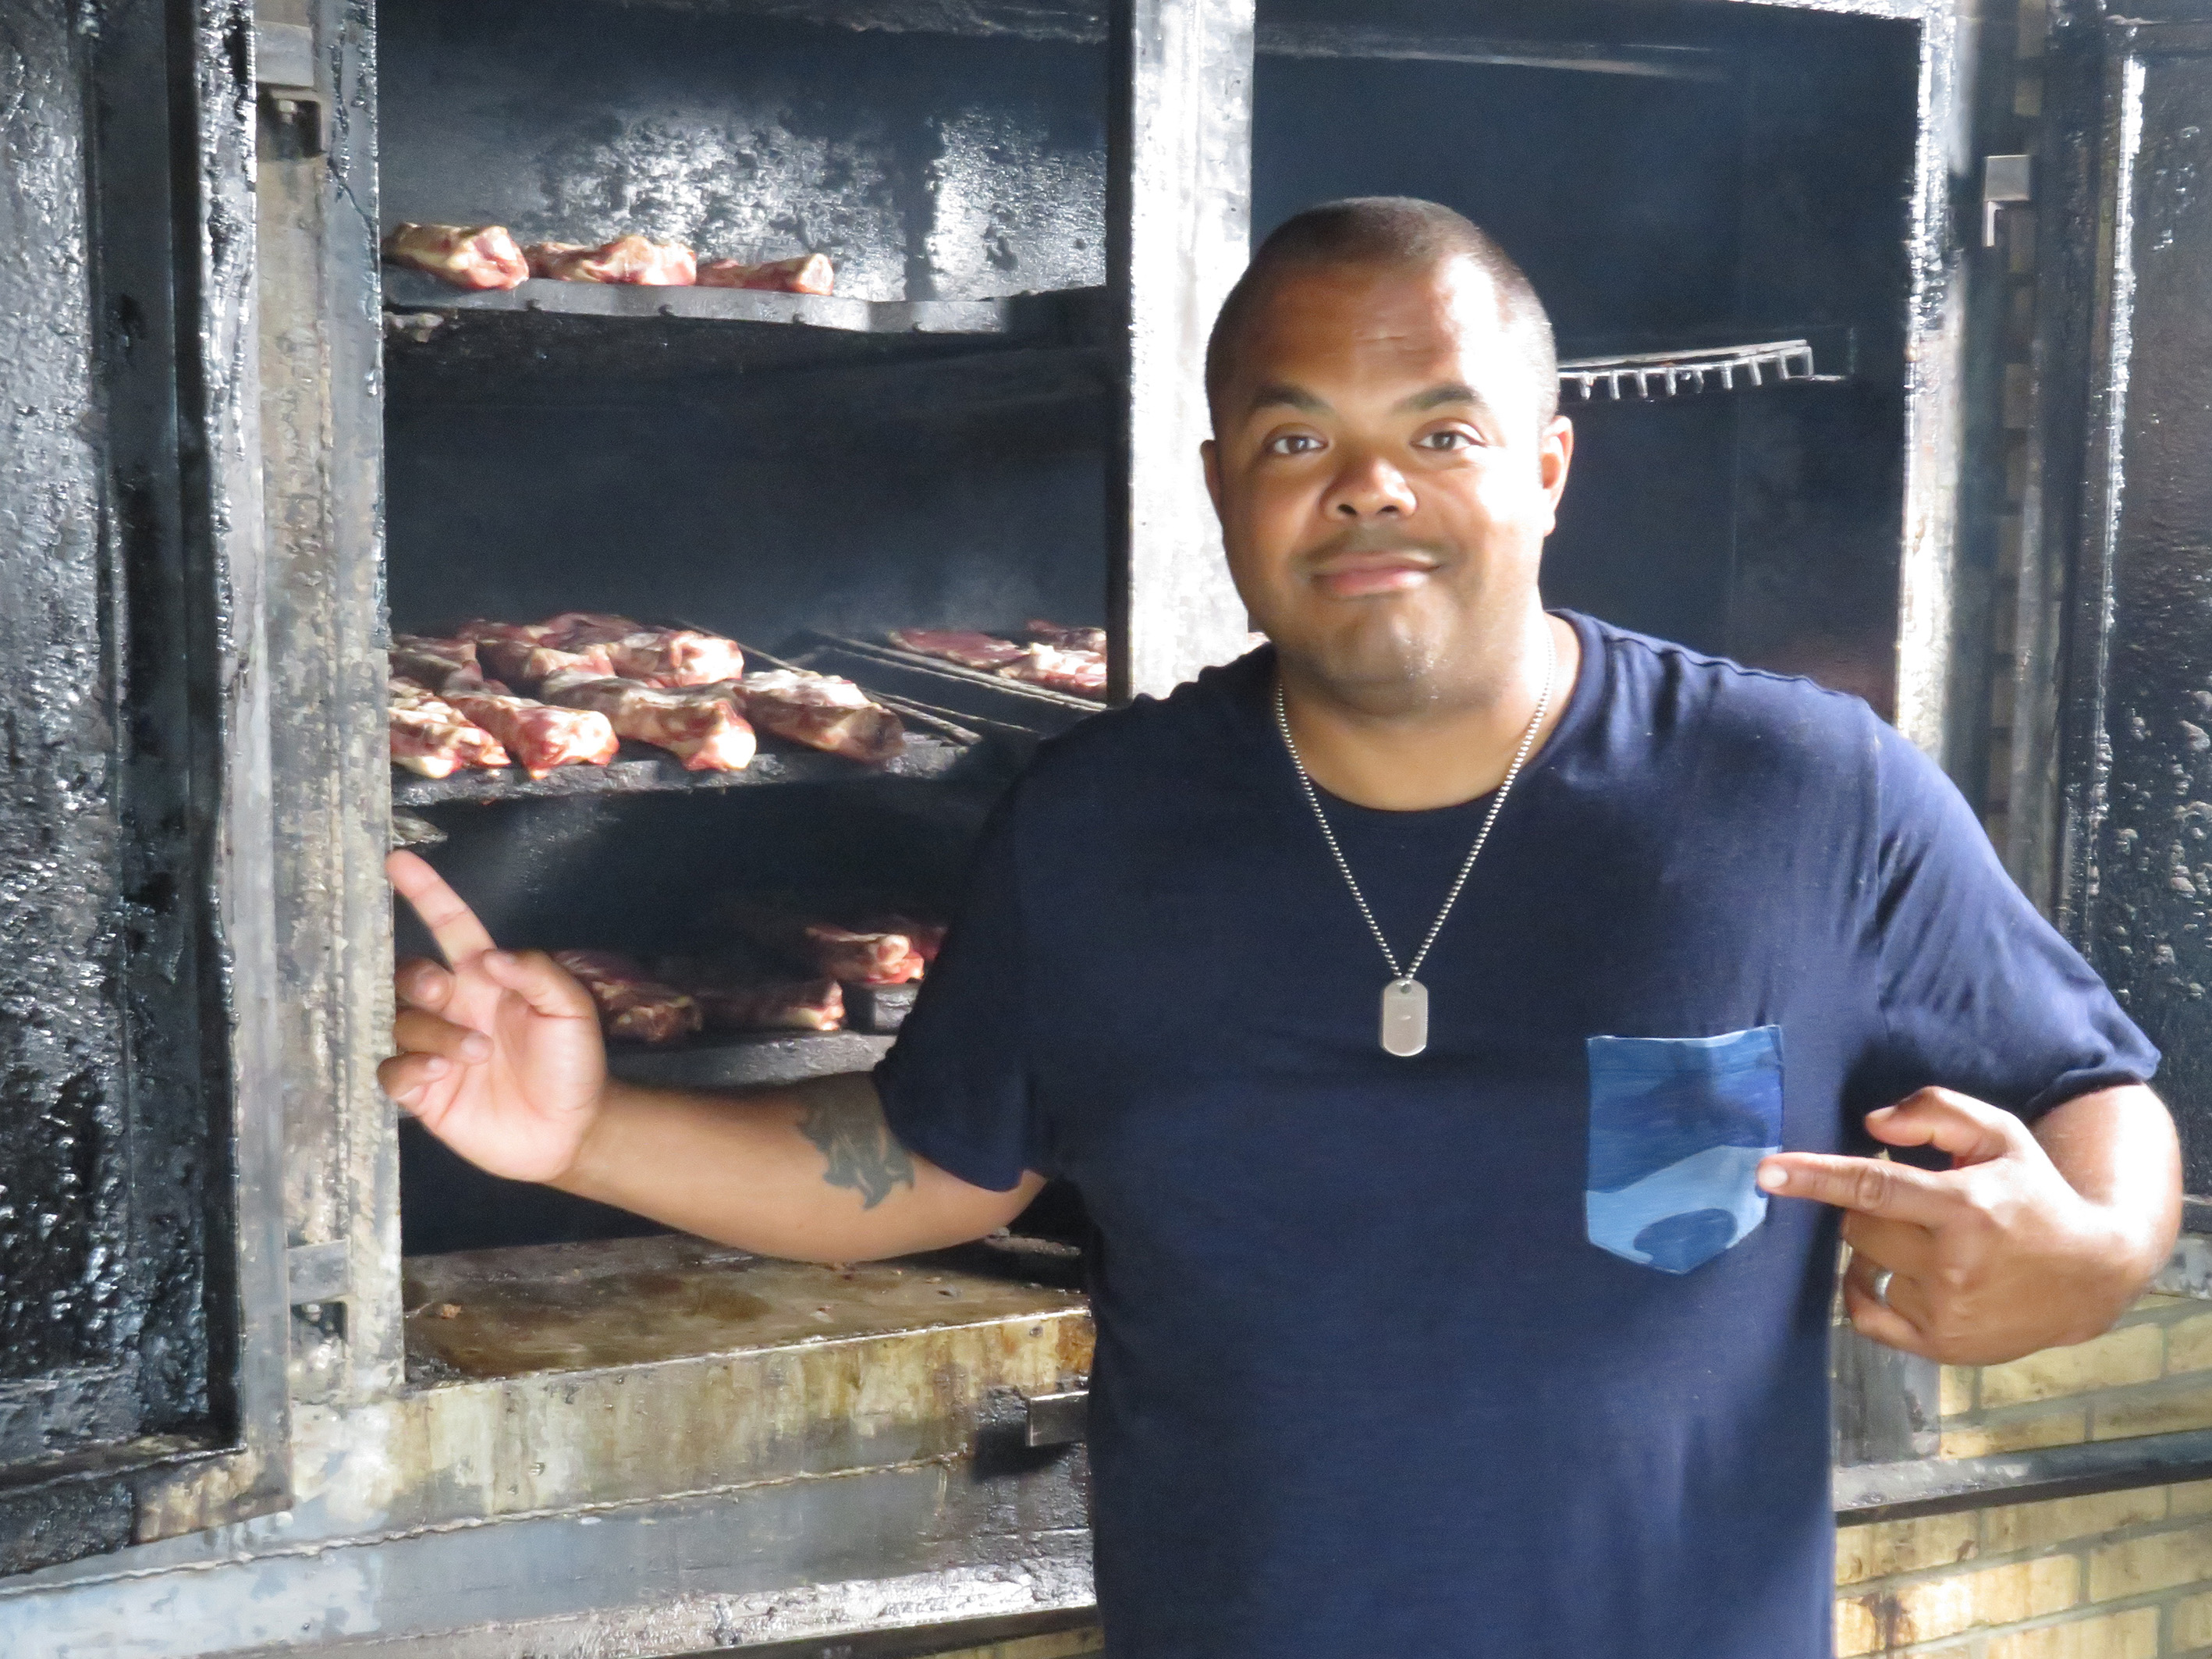 Roger Mooking's primal connections